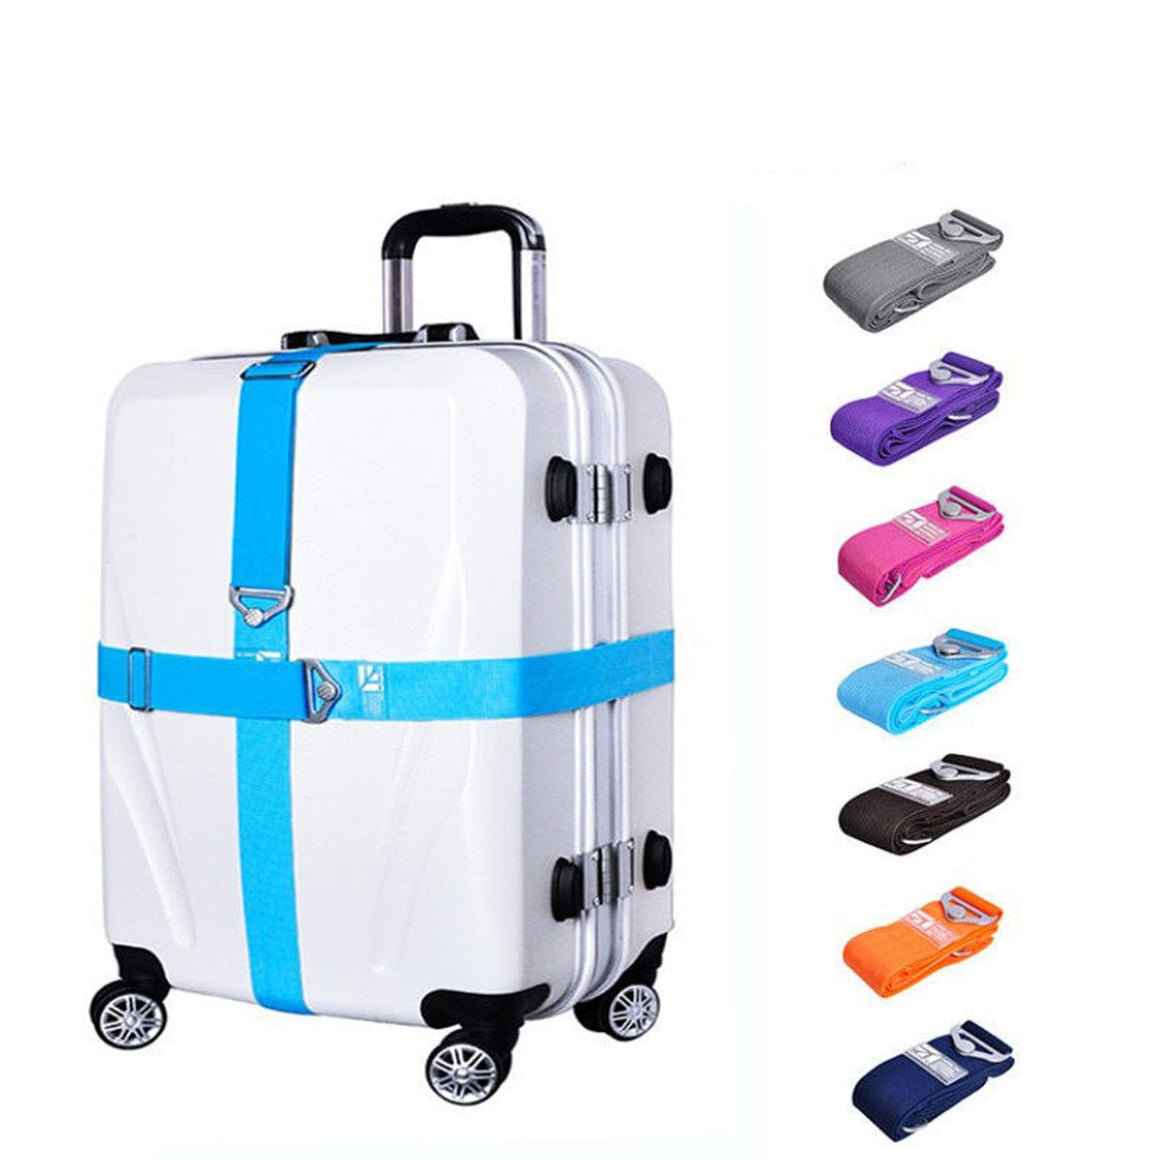 OKOKC Luggage Strap Travel Accessories Suitcase Belt Trolley Adjustable Compartment Luggage Straps 168cm